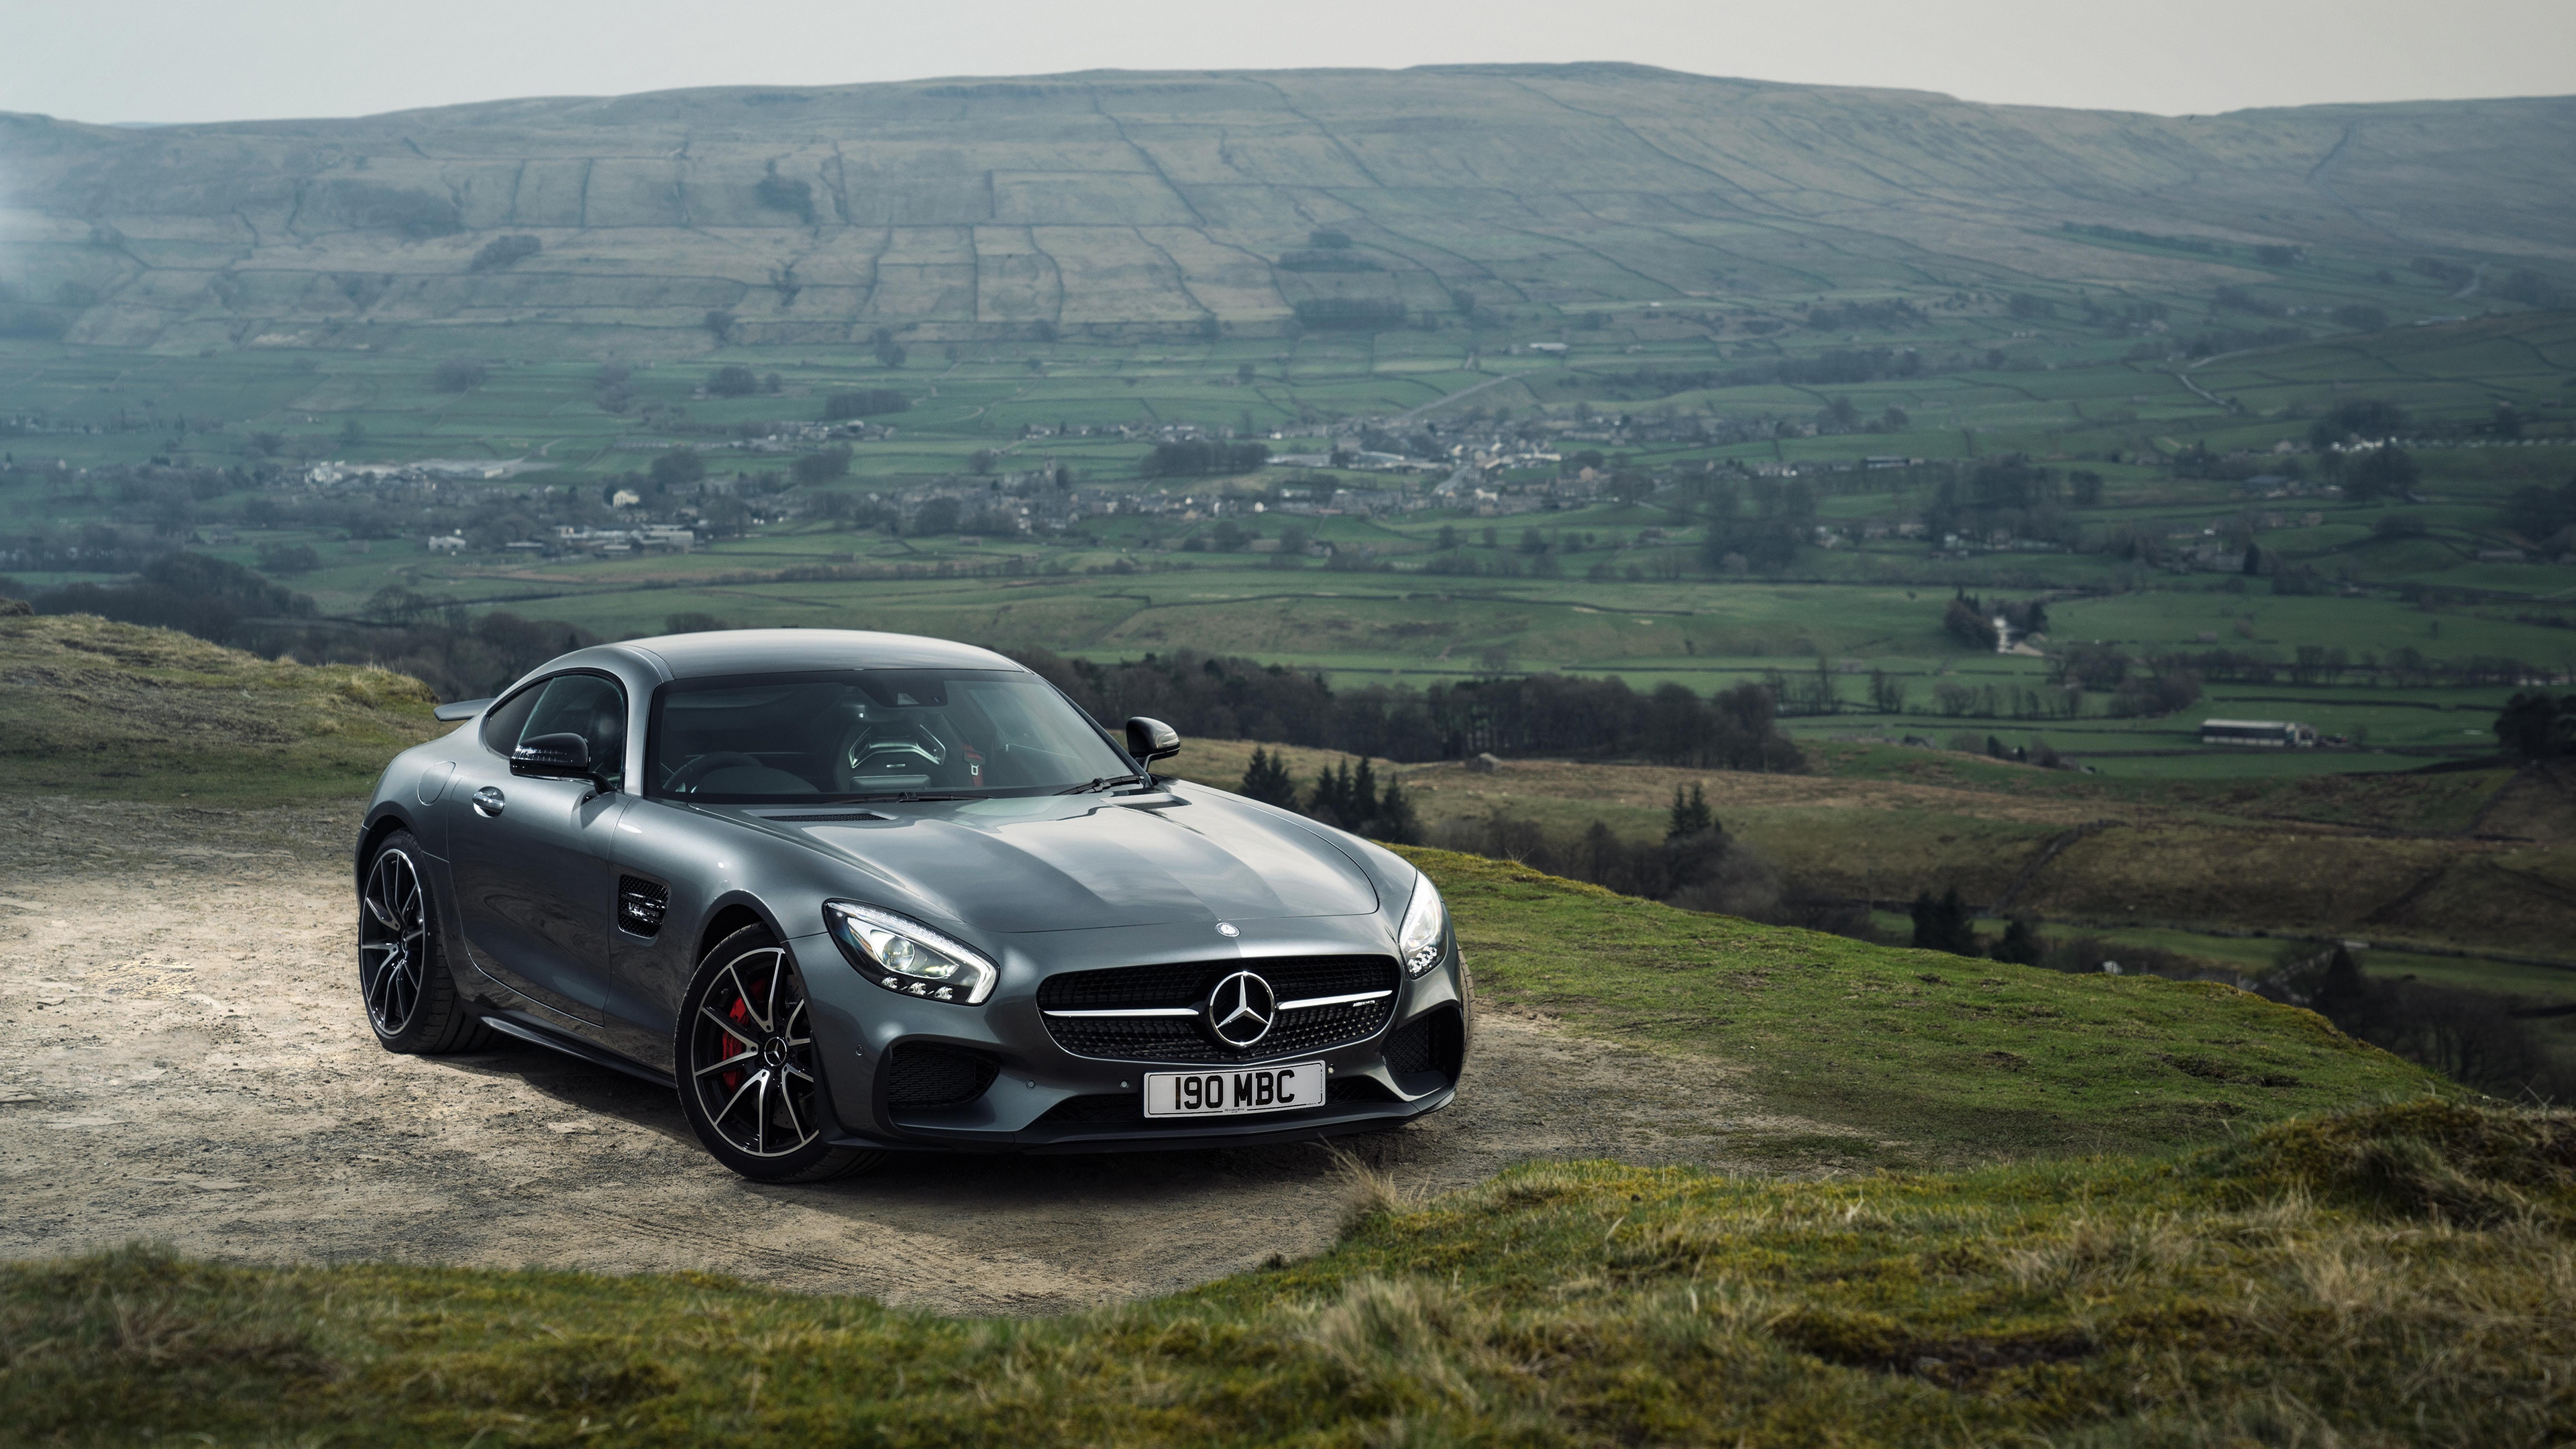 mercedes amg gt s gray side view 4k 1538935013 - mercedes, amg, gt s, gray, side view 4k - Mercedes, gt s, AMG